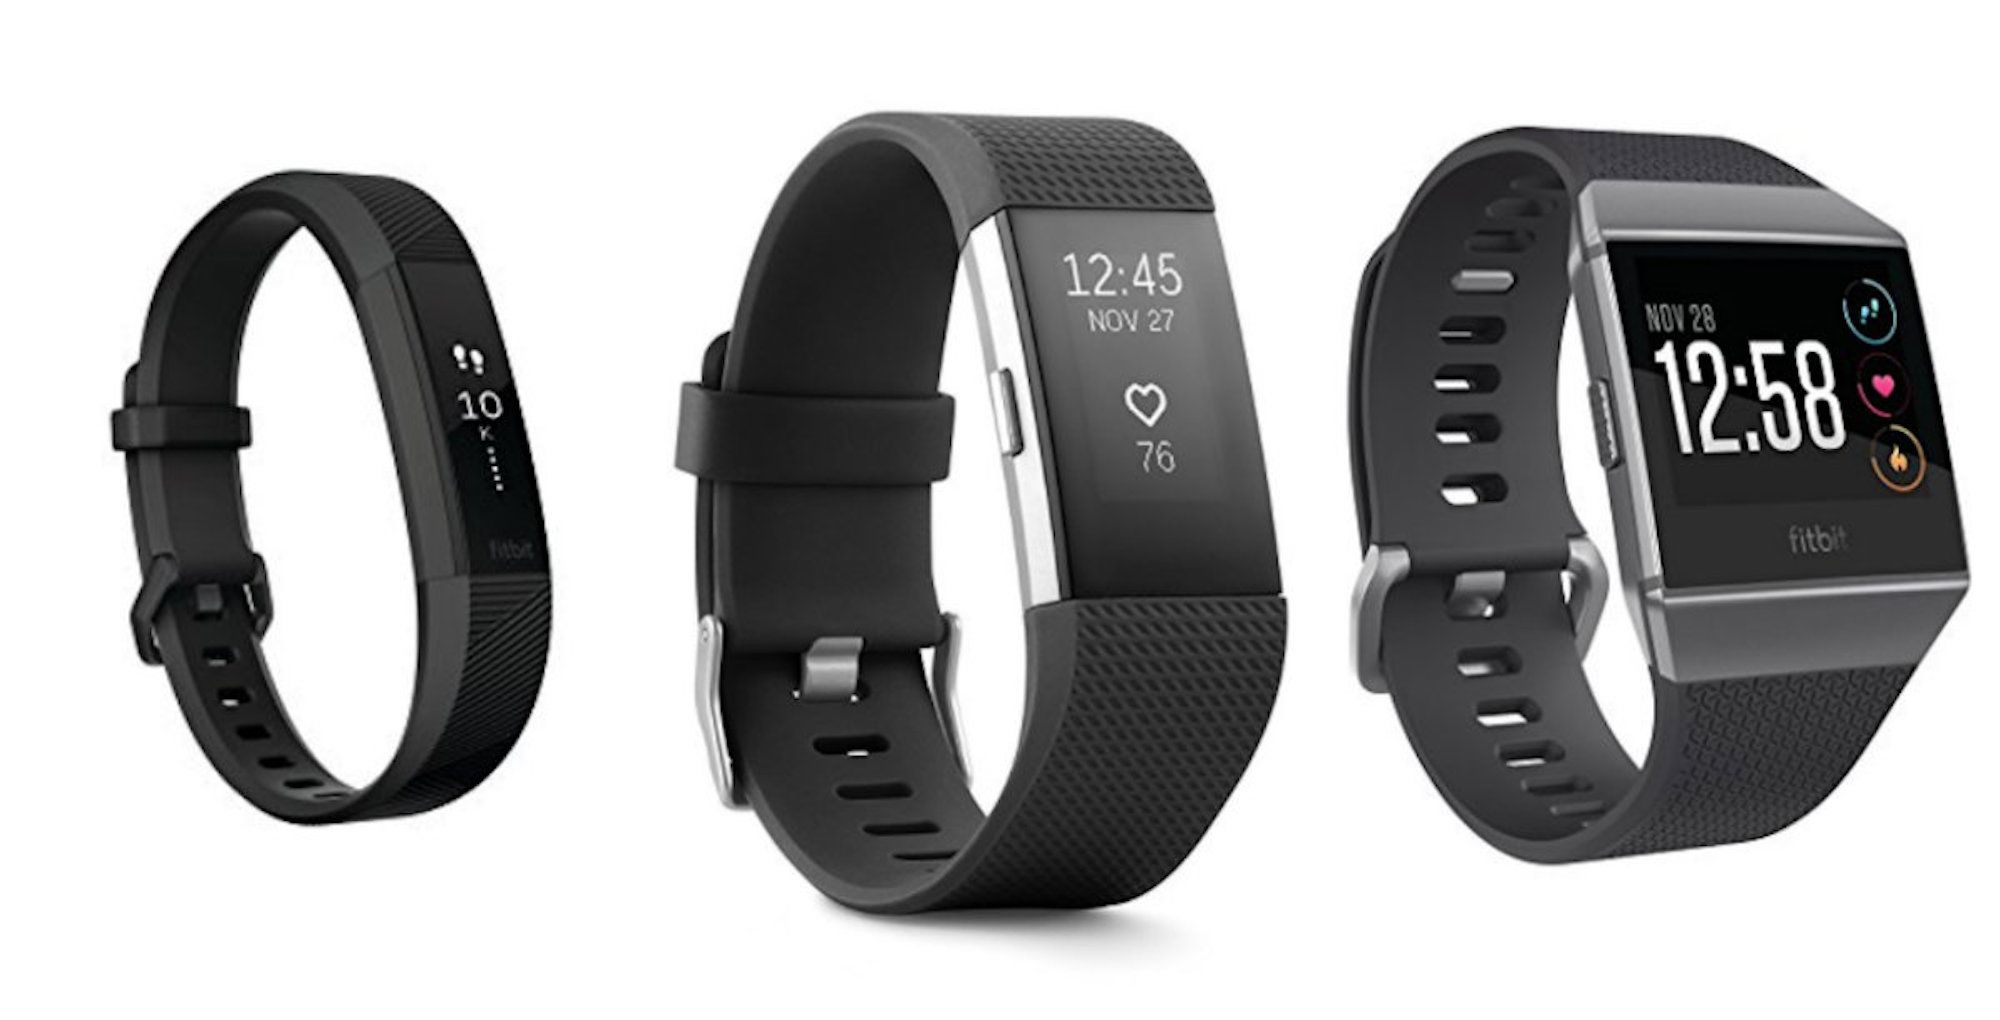 Amazon Fitbit Sale - How to Save $50 Off of a Fitbit